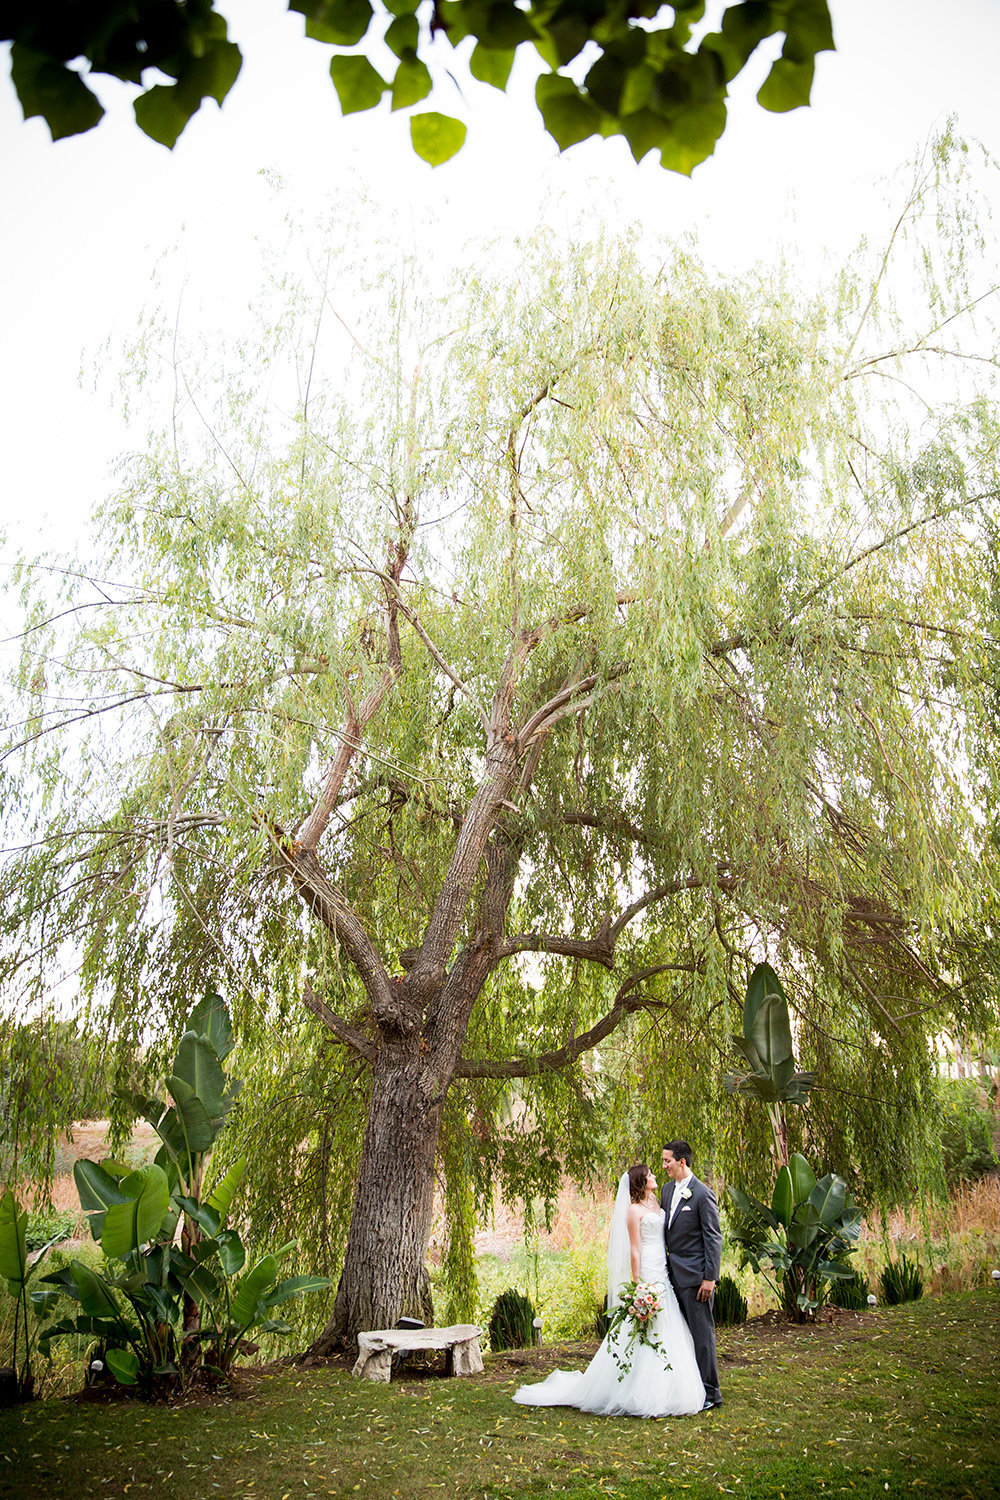 weeping willow tree with bride and groom